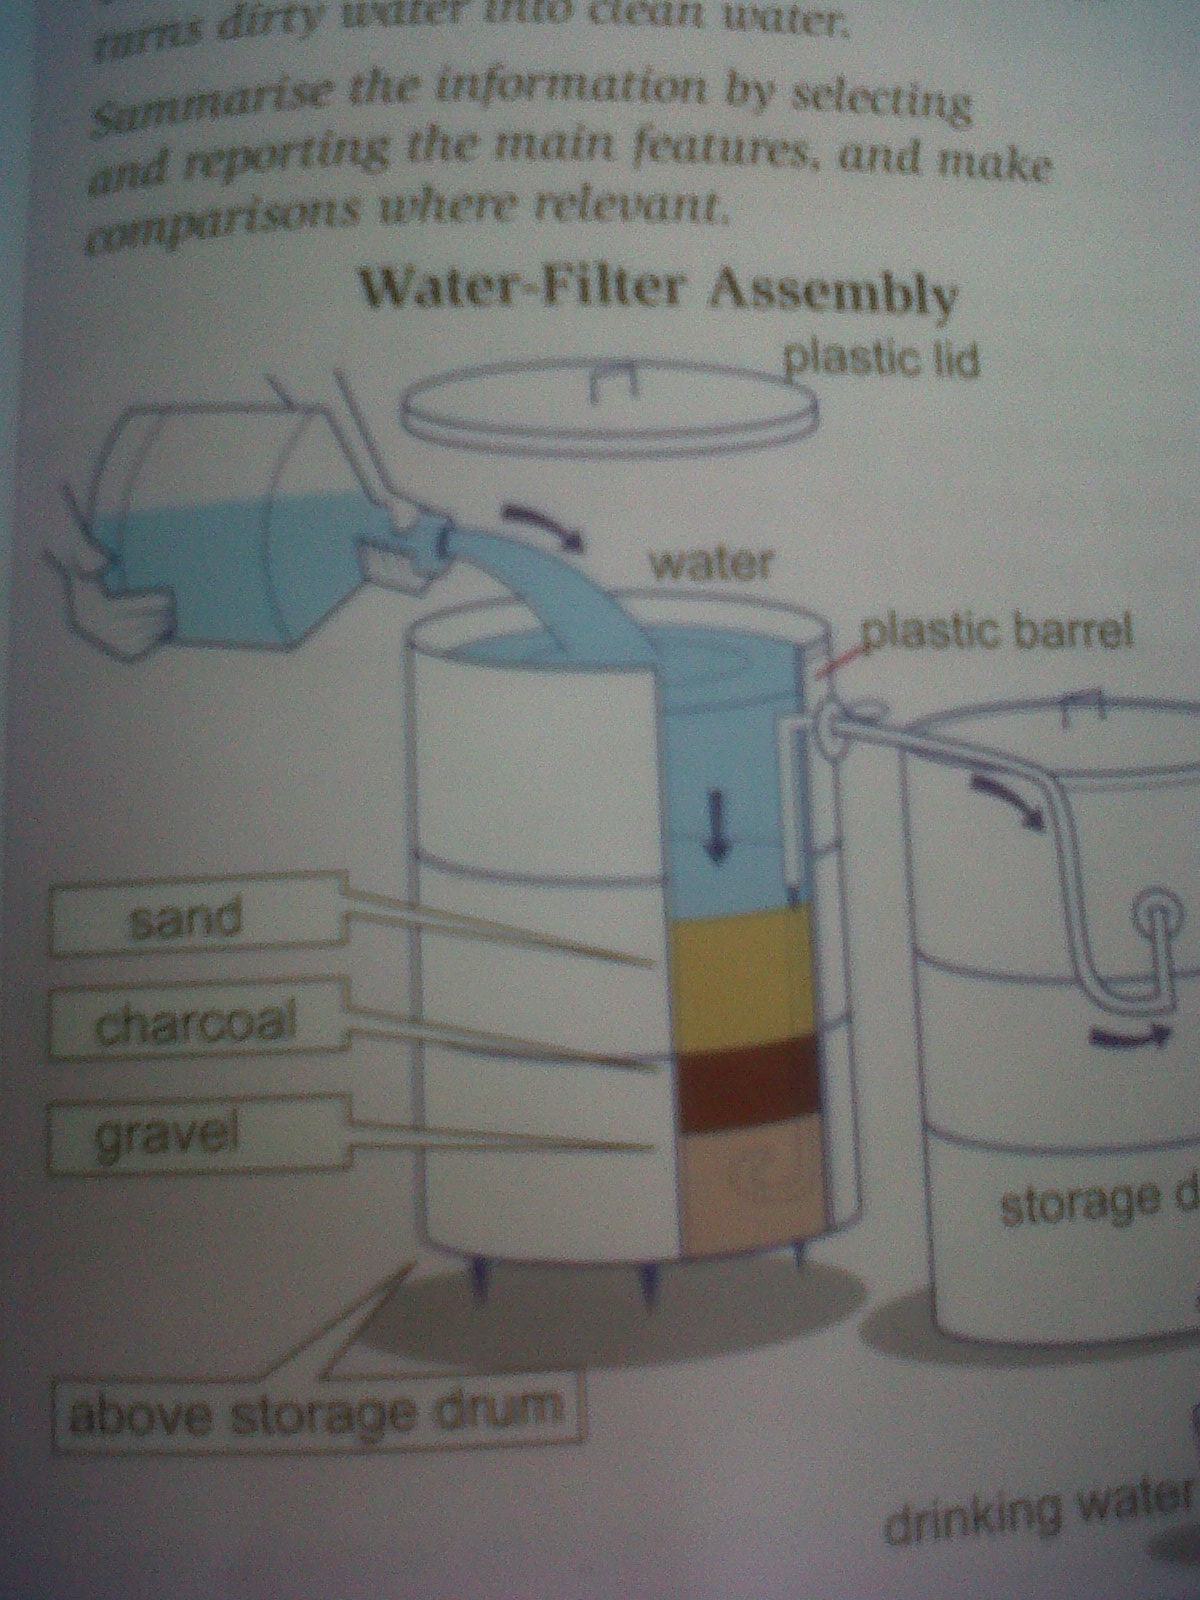 The Diagram Below Shows A Simple System That Turns Dirty Water Into Clean Water